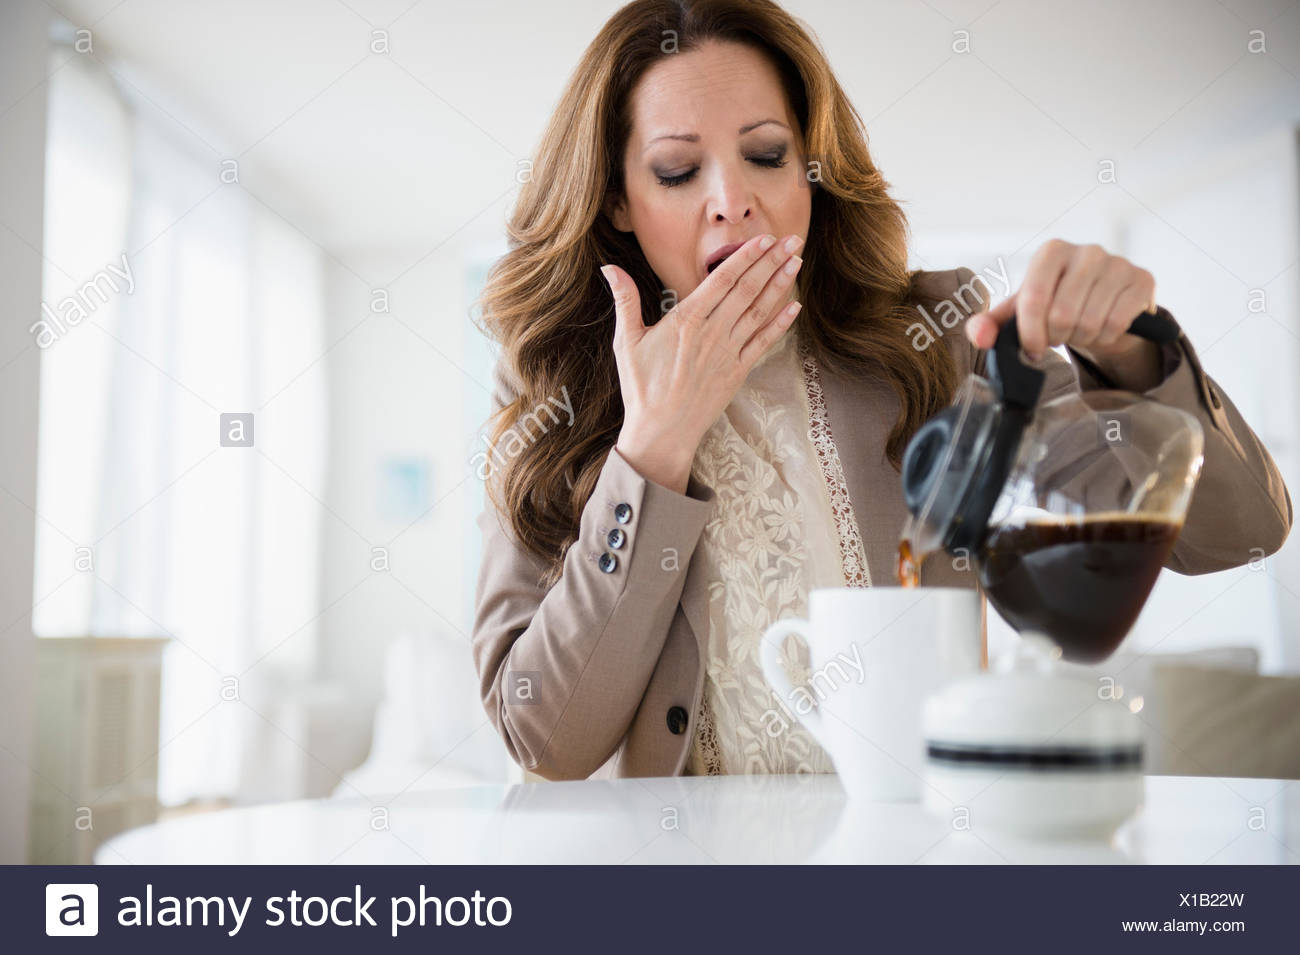 Yawnging woman pouring coffee - Stock Image